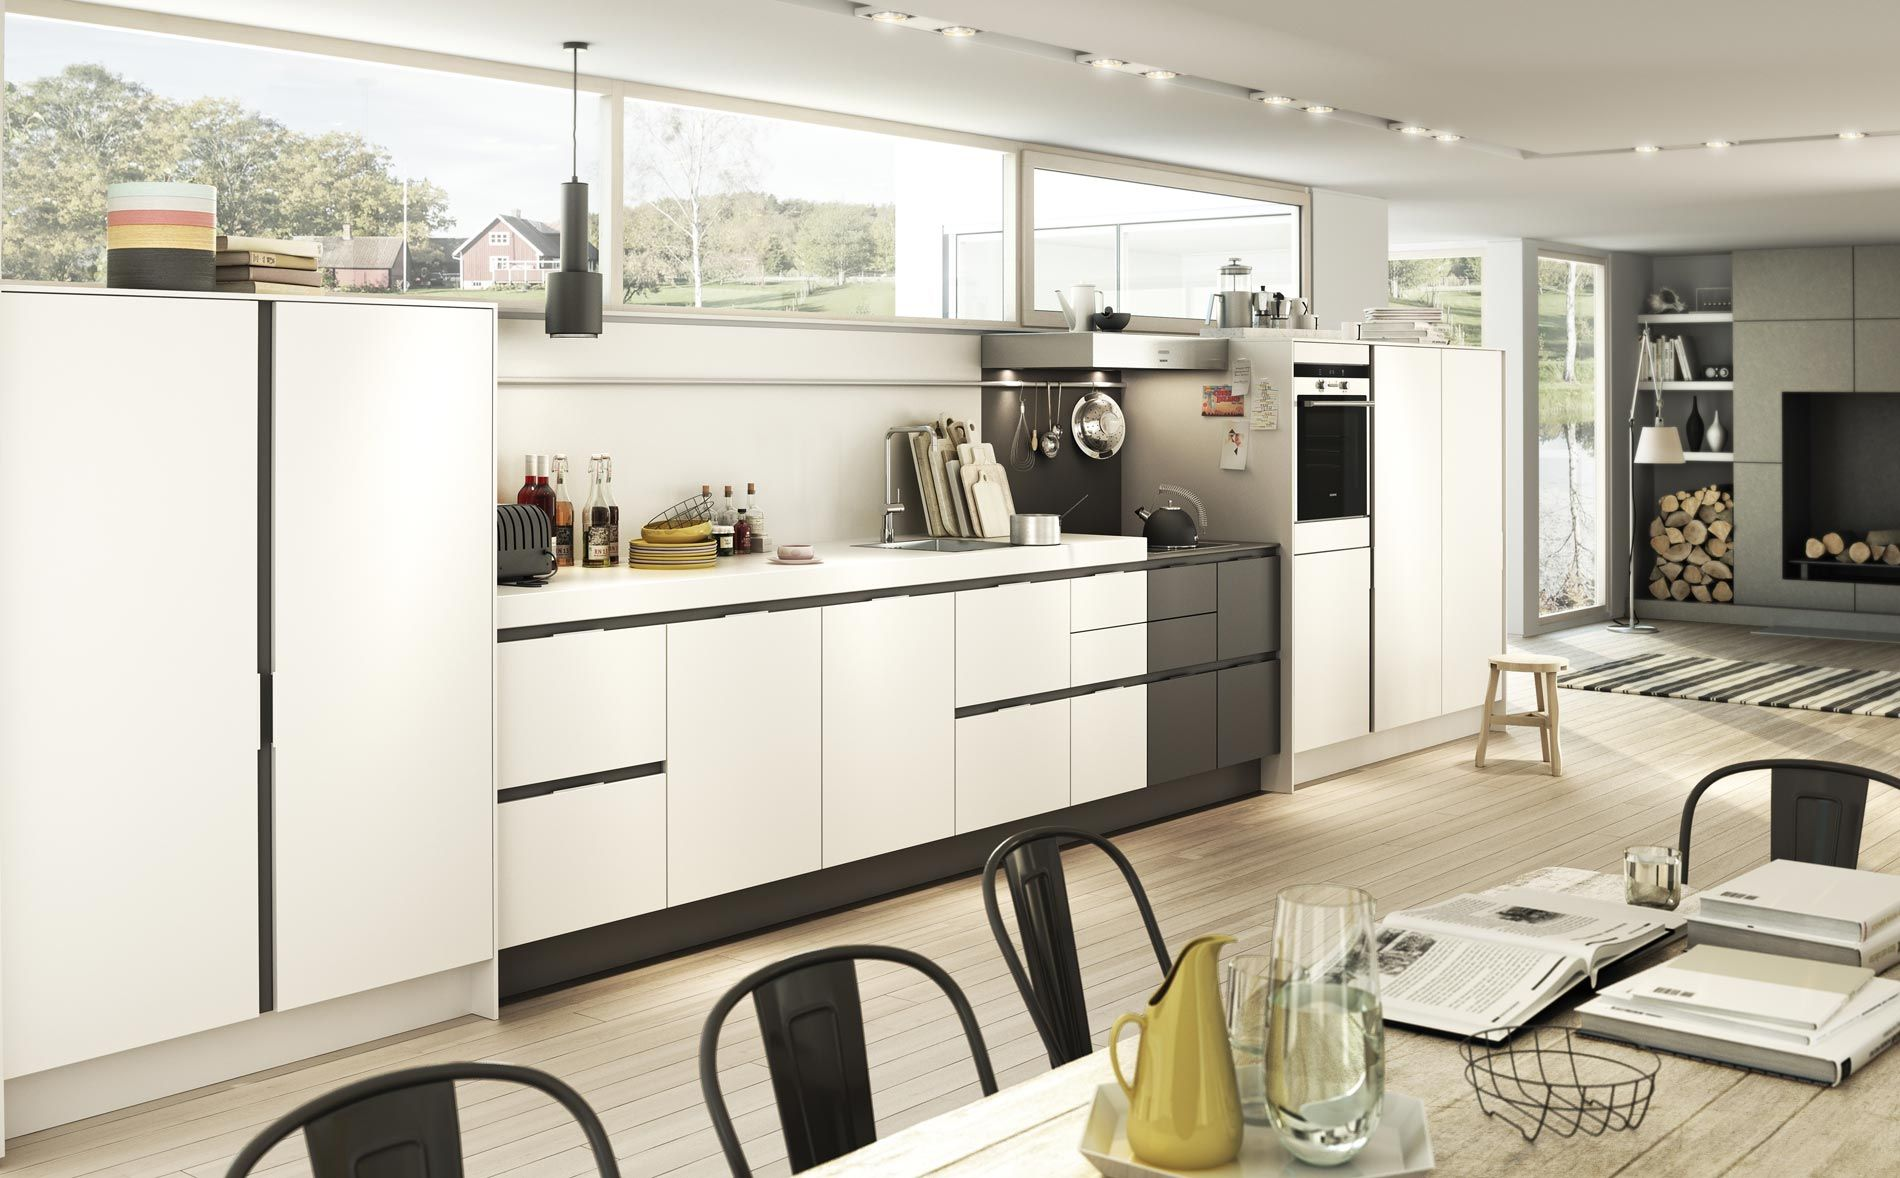 Amazing SieMatic URBAN SieMatic A solitaire among kitchen furniture u With SieMatic we have re interpreted a piece of traditional furniture the u